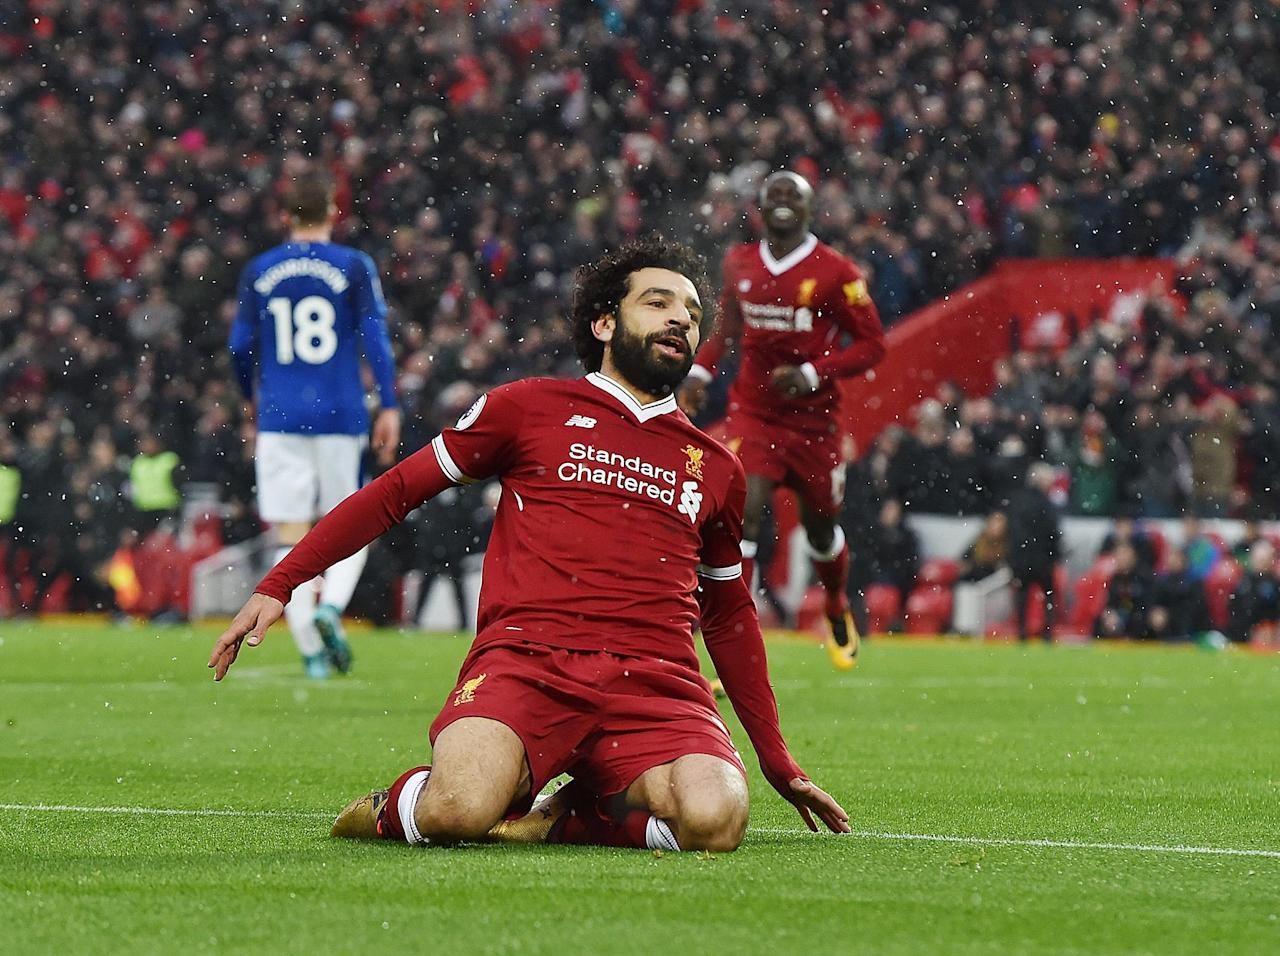 Liverpool forward Mohamed Salah named BBC African Footballer of the Year